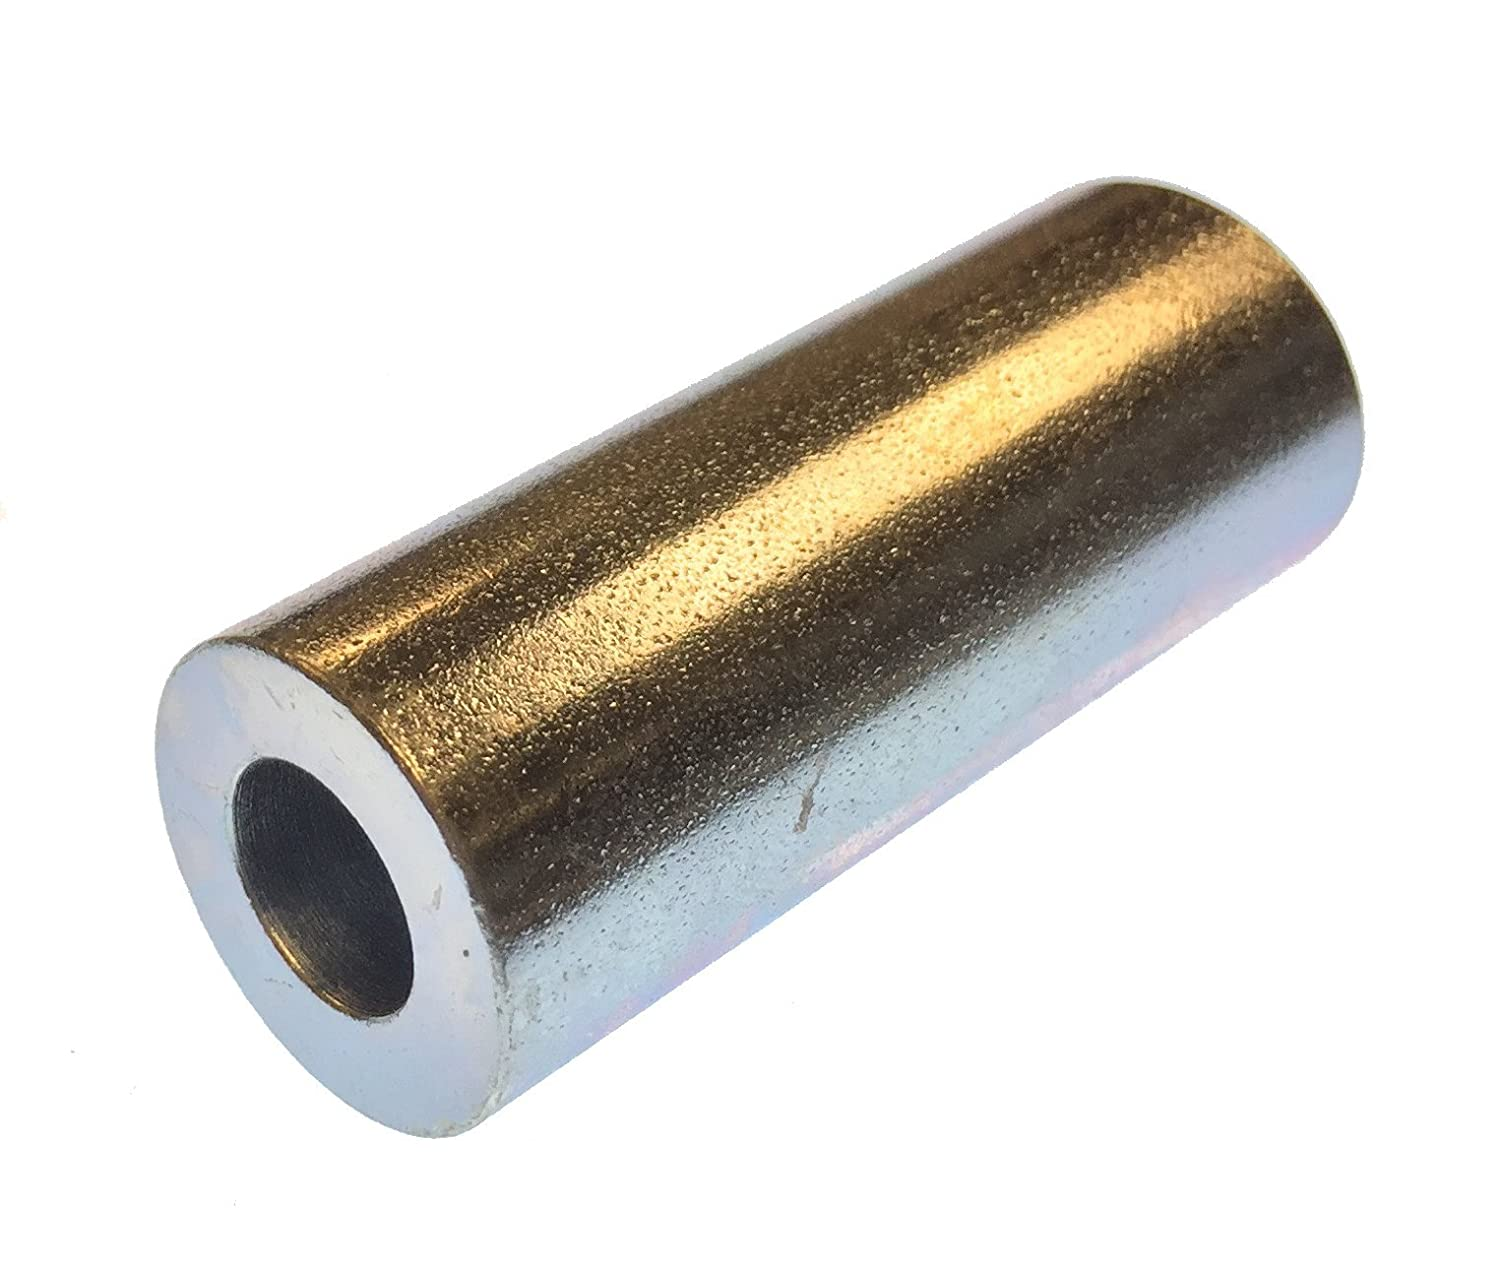 Pack of 10 1//8 OD 0 Screw Size 0.064 ID Lyn-Tron Zinc Plated Finish 1//4 Length Brass